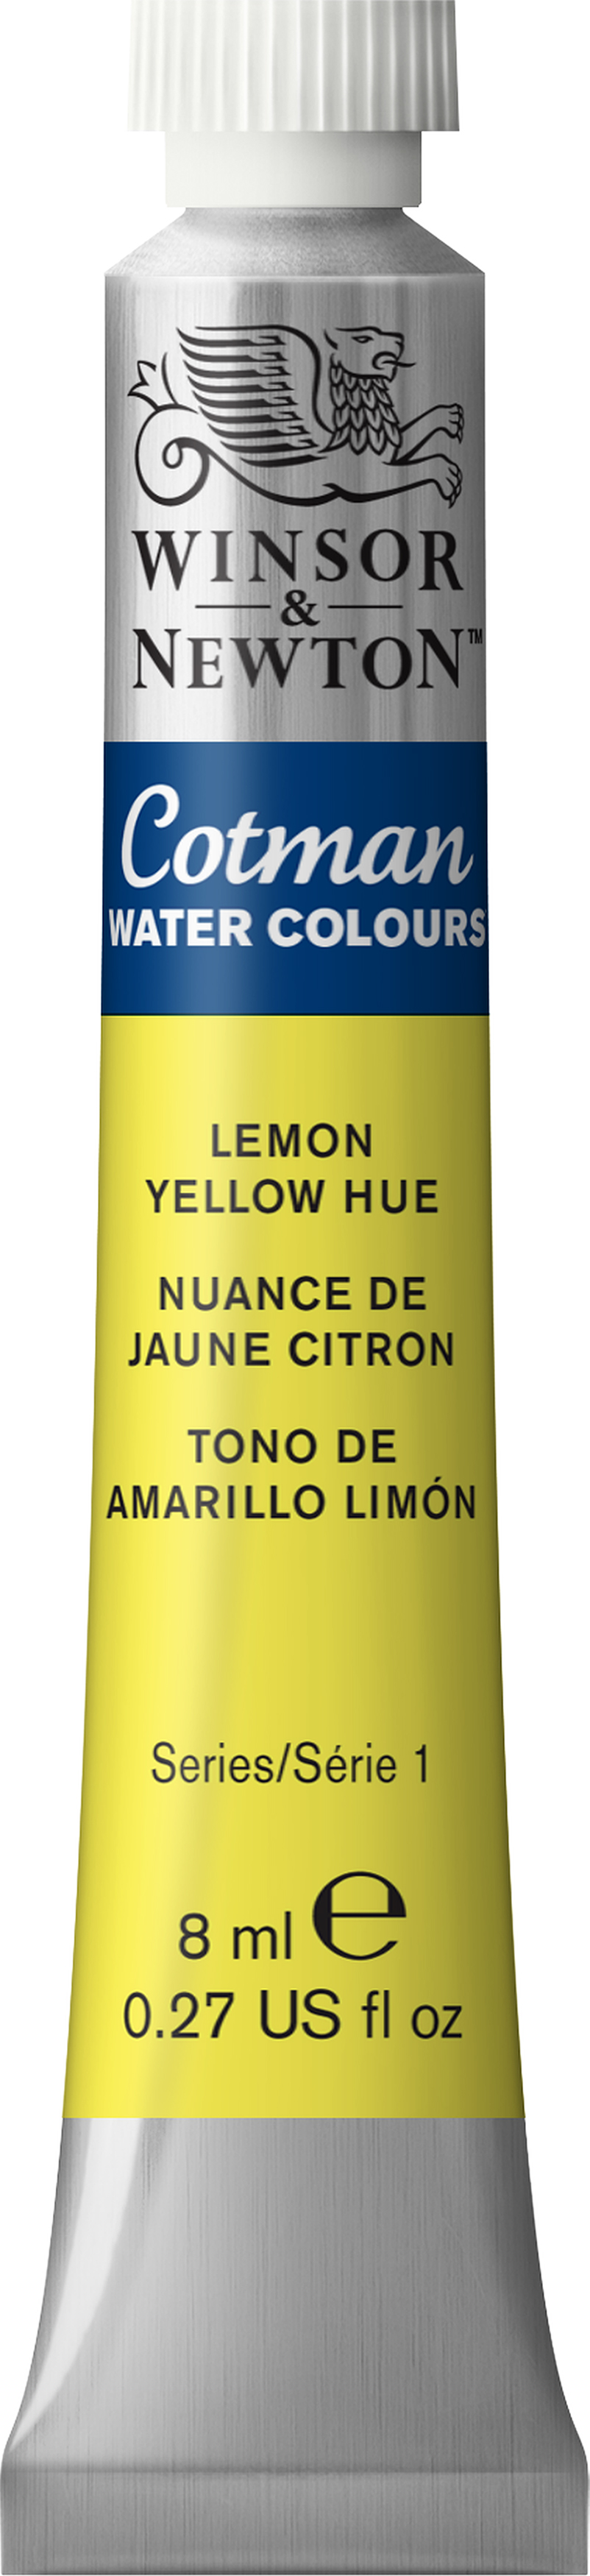 Winsor & Newton Cotman Water Colours 8ml-Lemon Yellow Hue